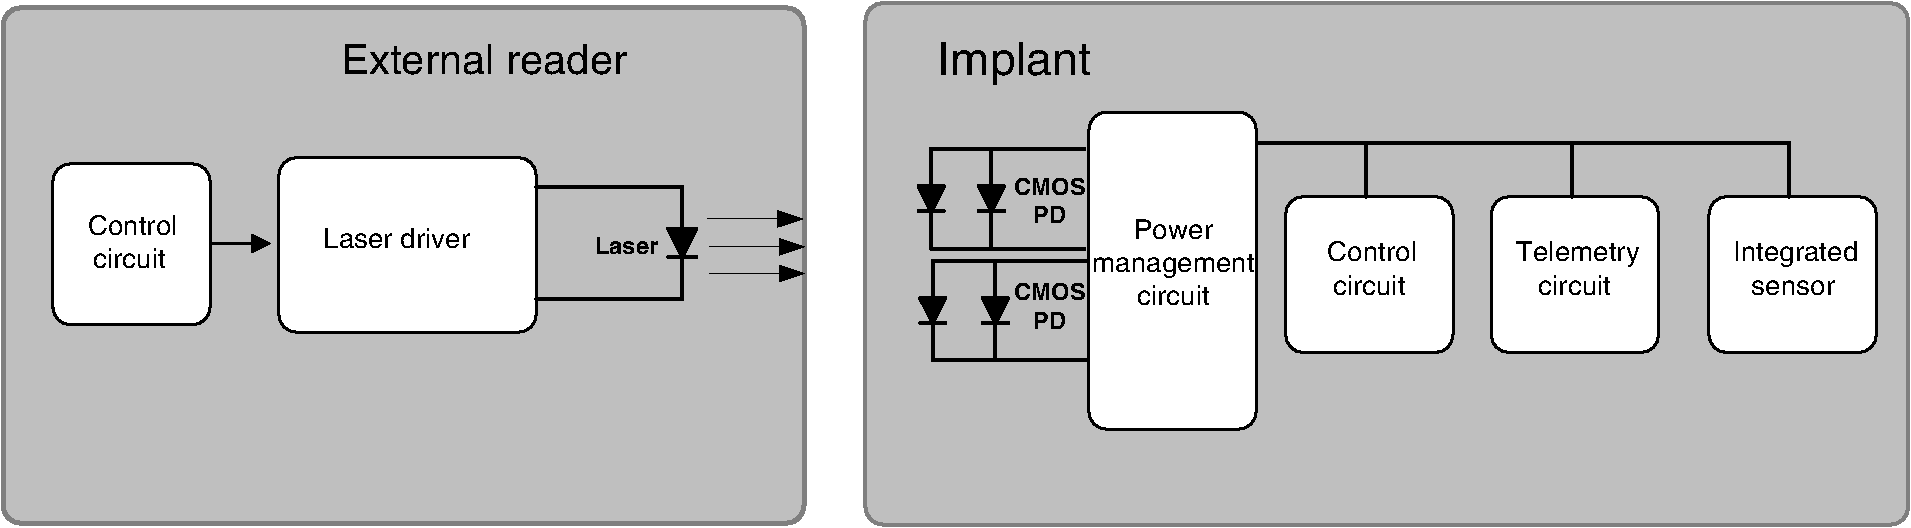 Silicon On Insulator Based Complementary Metal Oxide Semiconductor Pc Heat Monitor Circuit Piezoelectric Sensor Schematic Representation Of Integrated Optoelectronic System Design